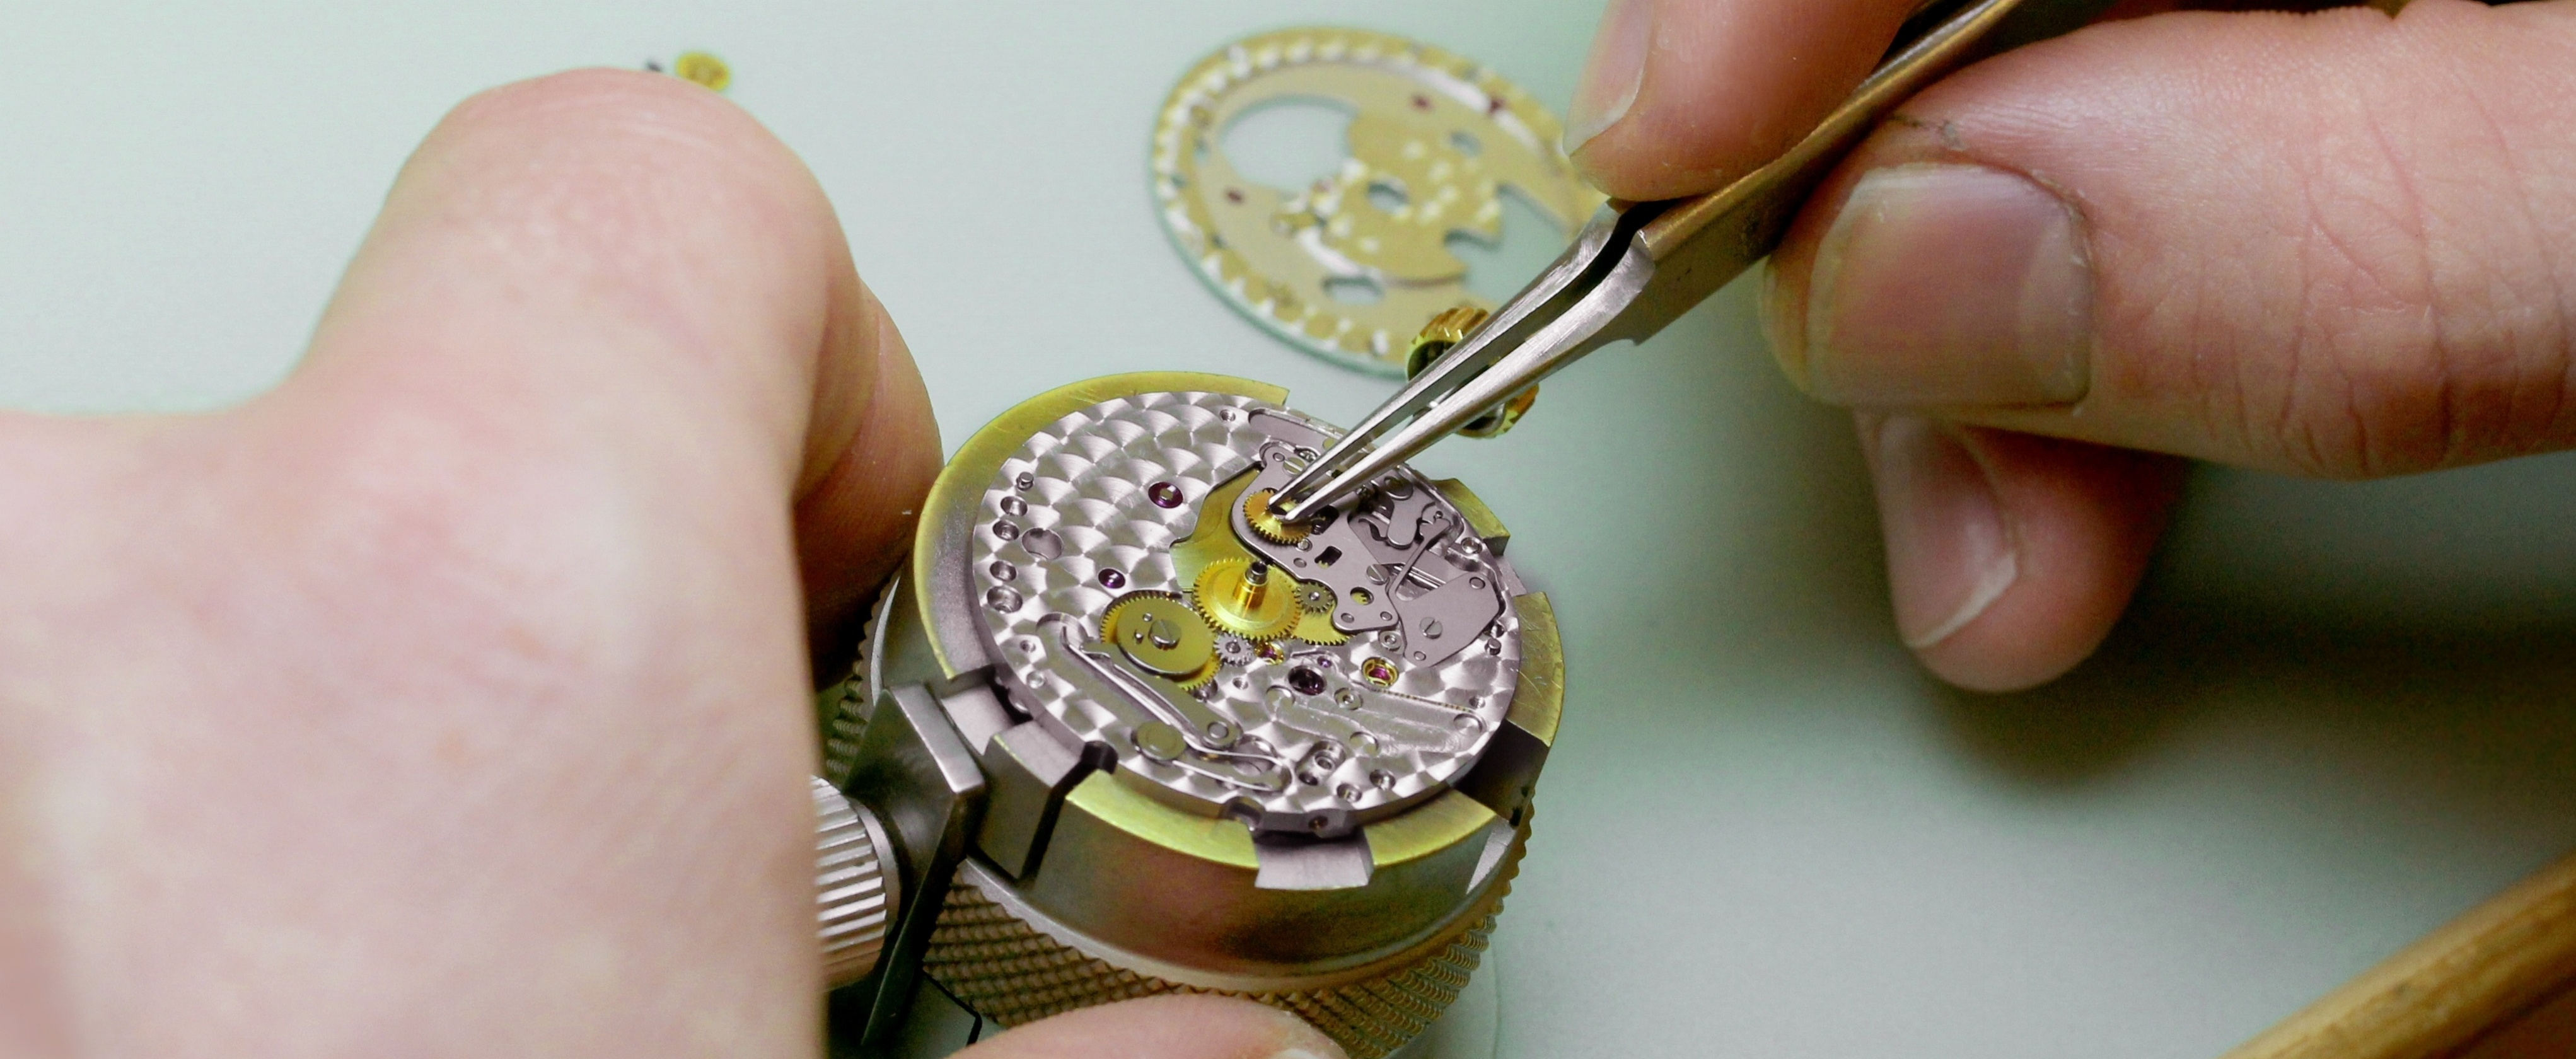 How much does a watch battery replacement cost?